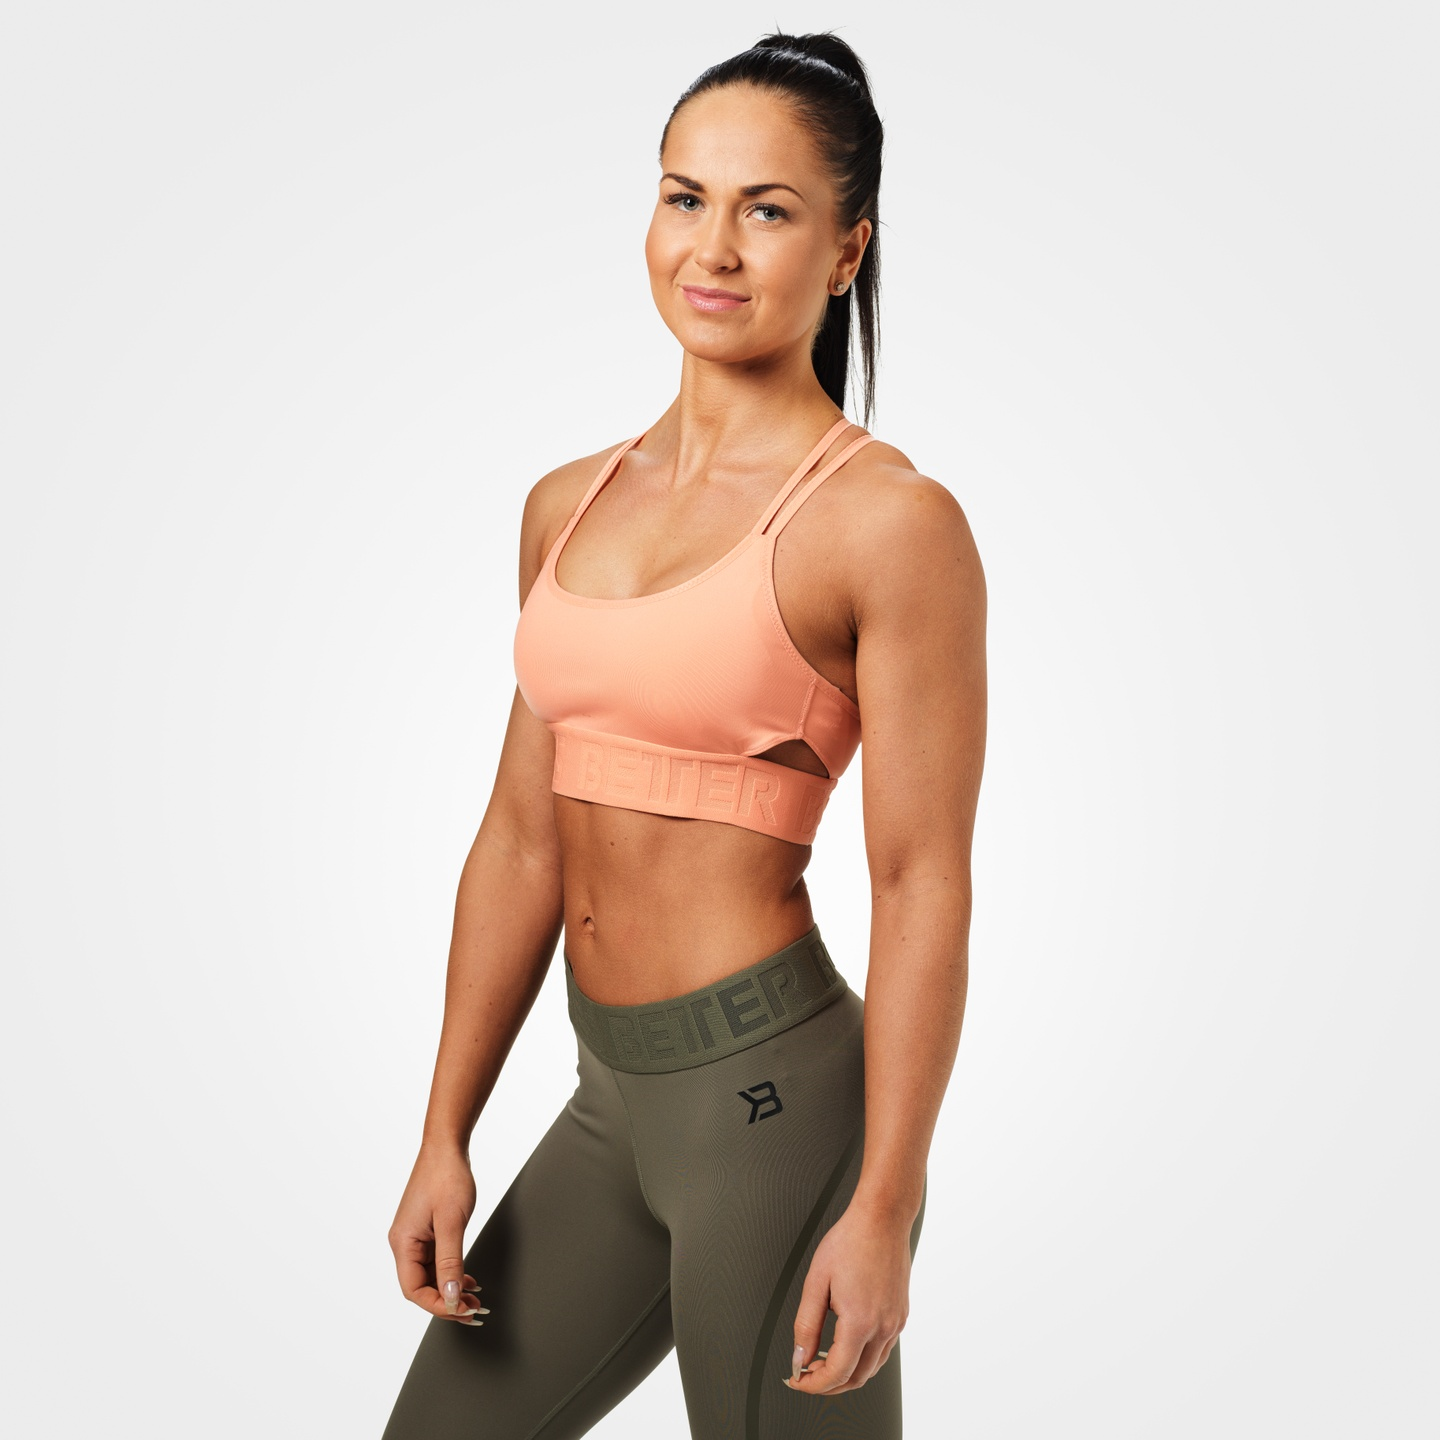 8648470b45ac8 A product image of Astoria sports bra